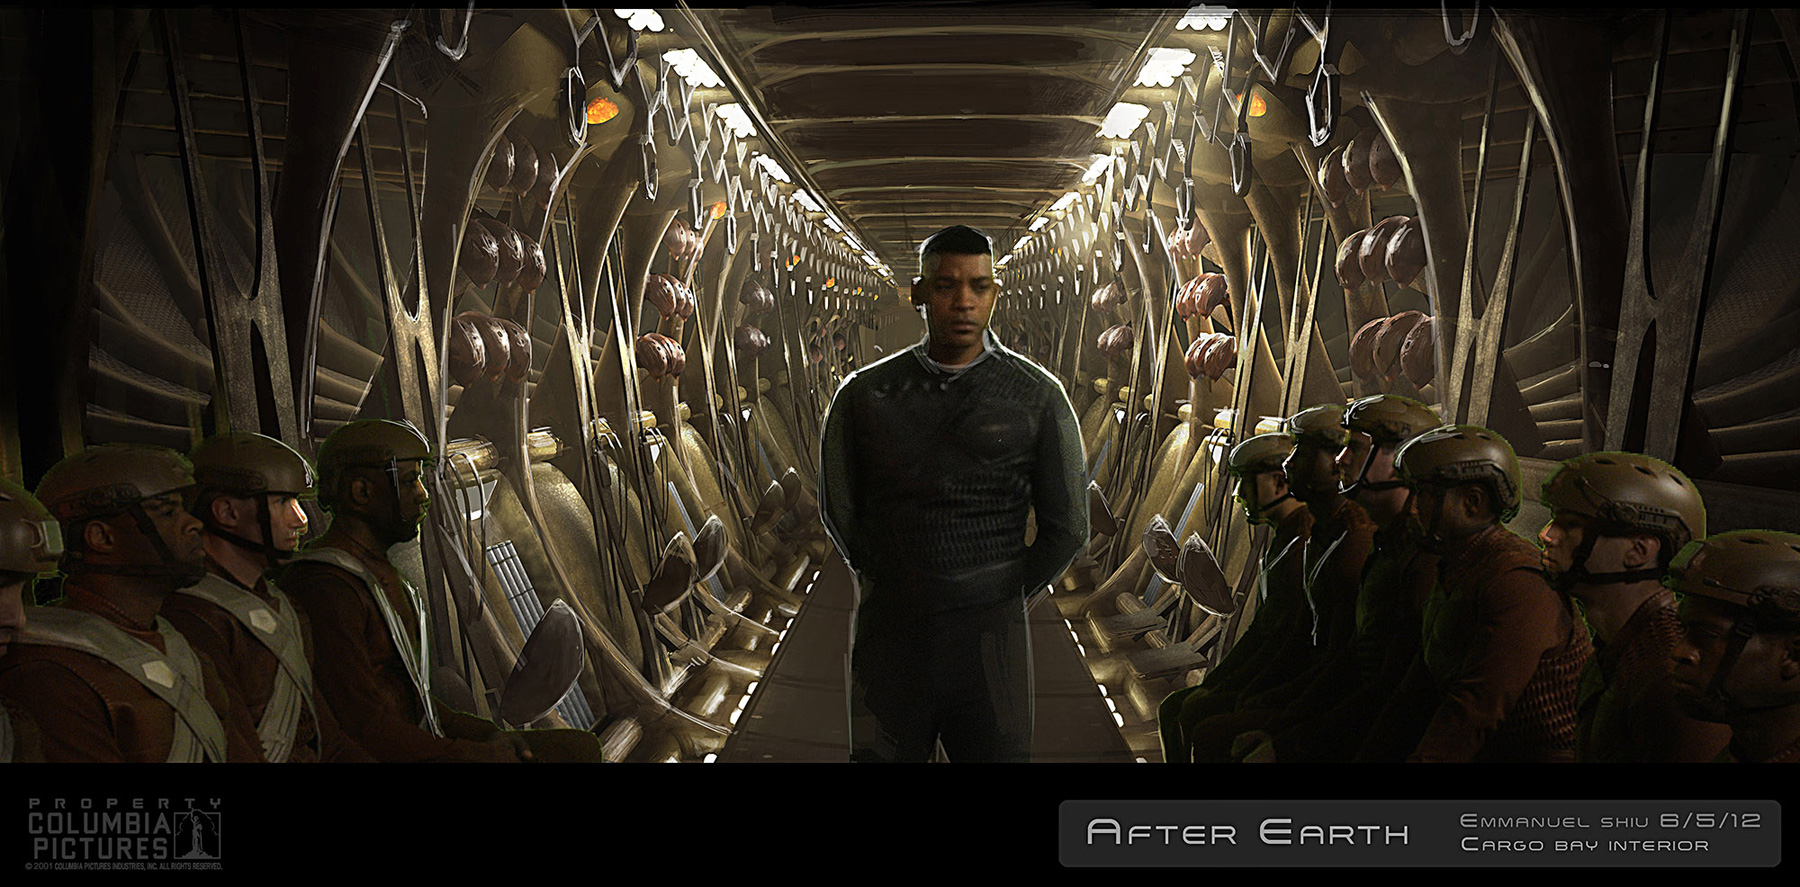 after earth concept art - photo #23